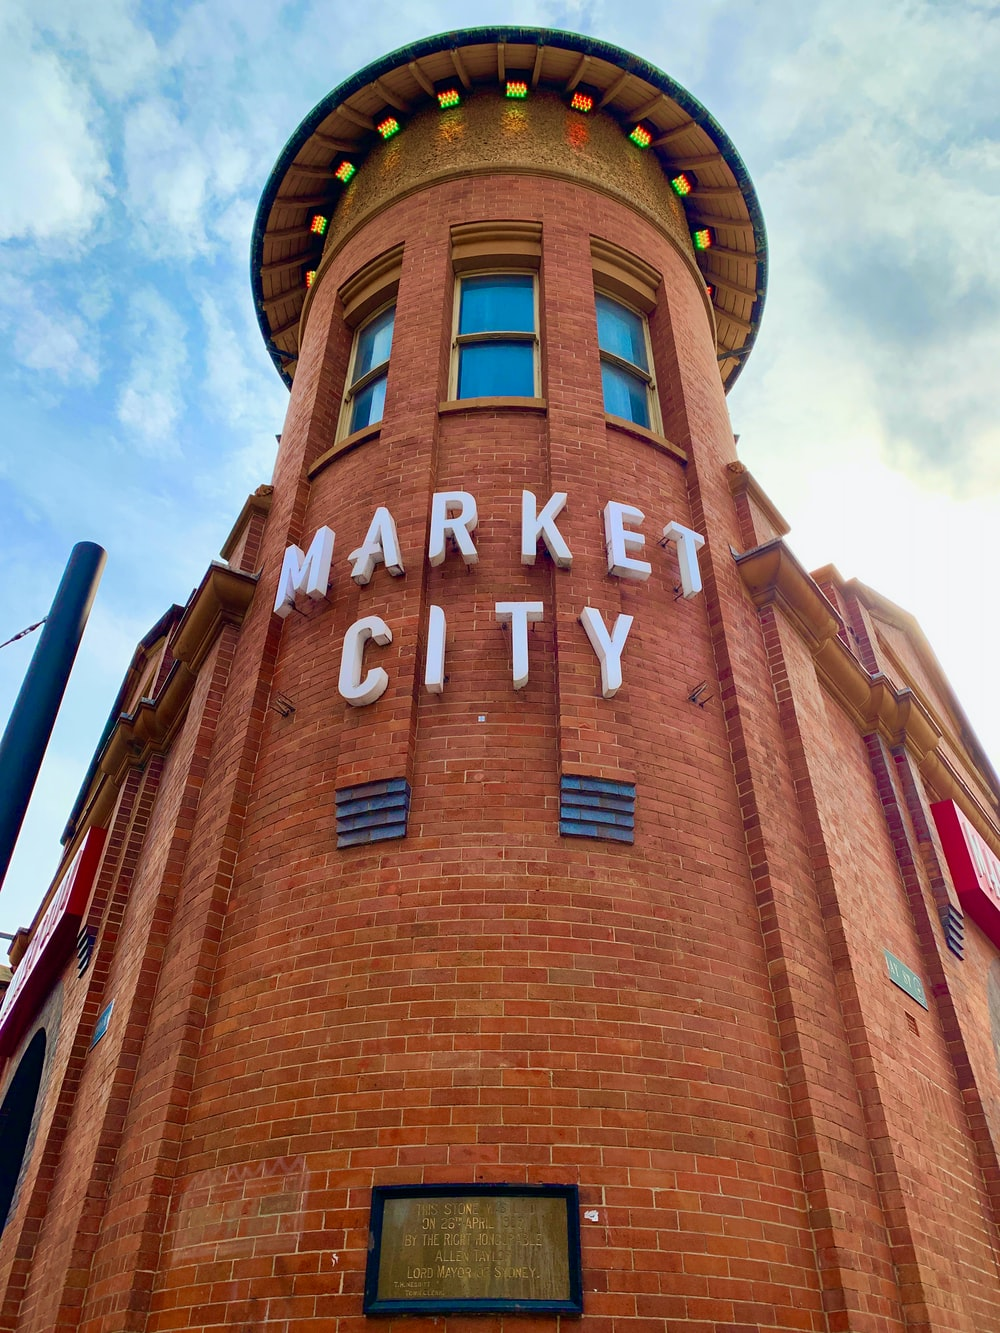 Market City sign